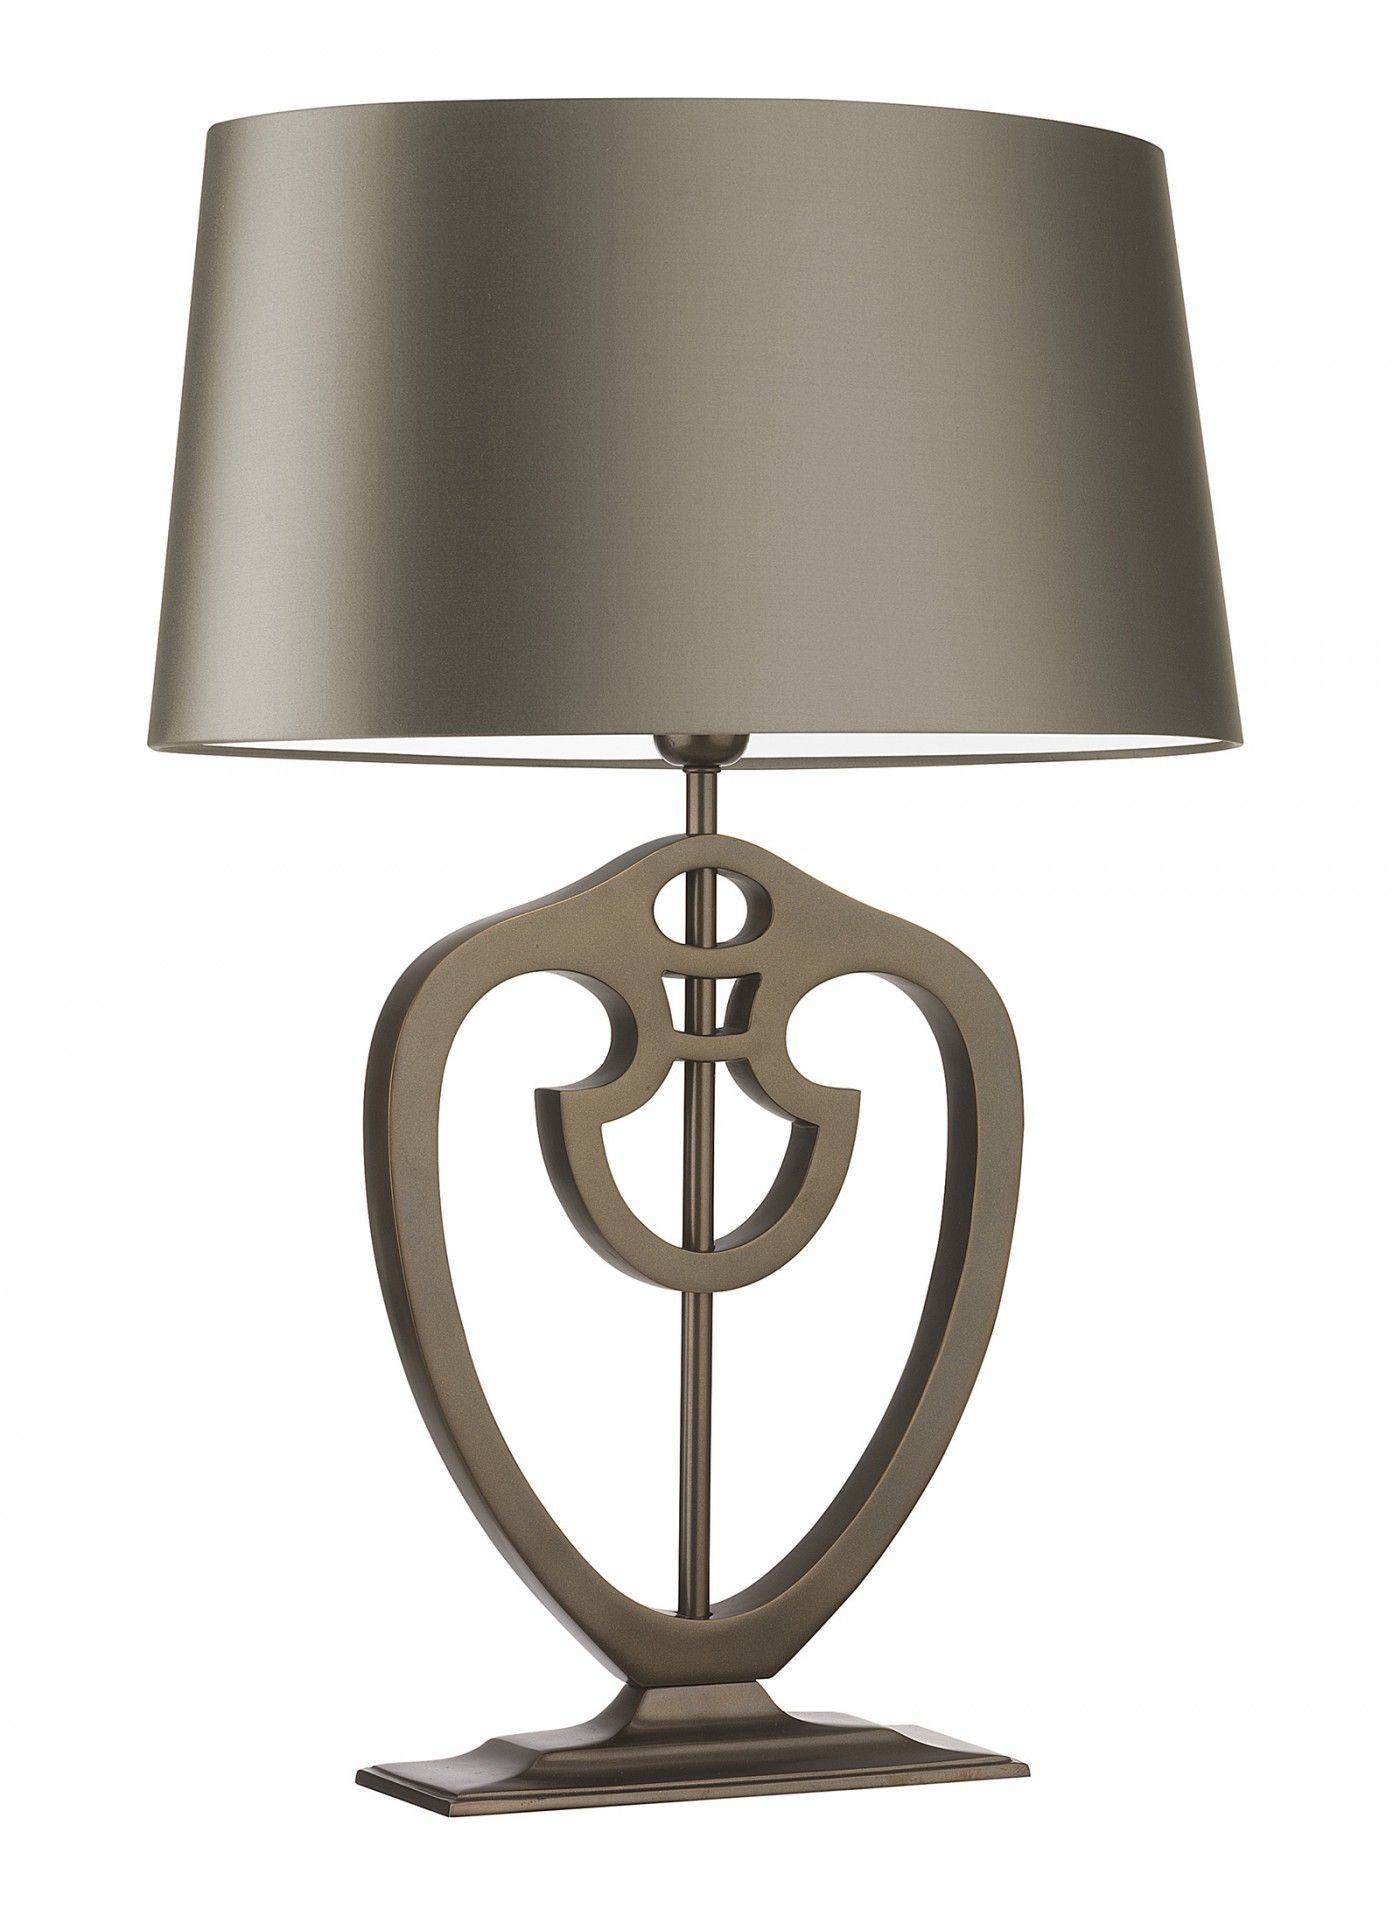 Morris Bronze Large Table Lamp. Inspired by the Arts and